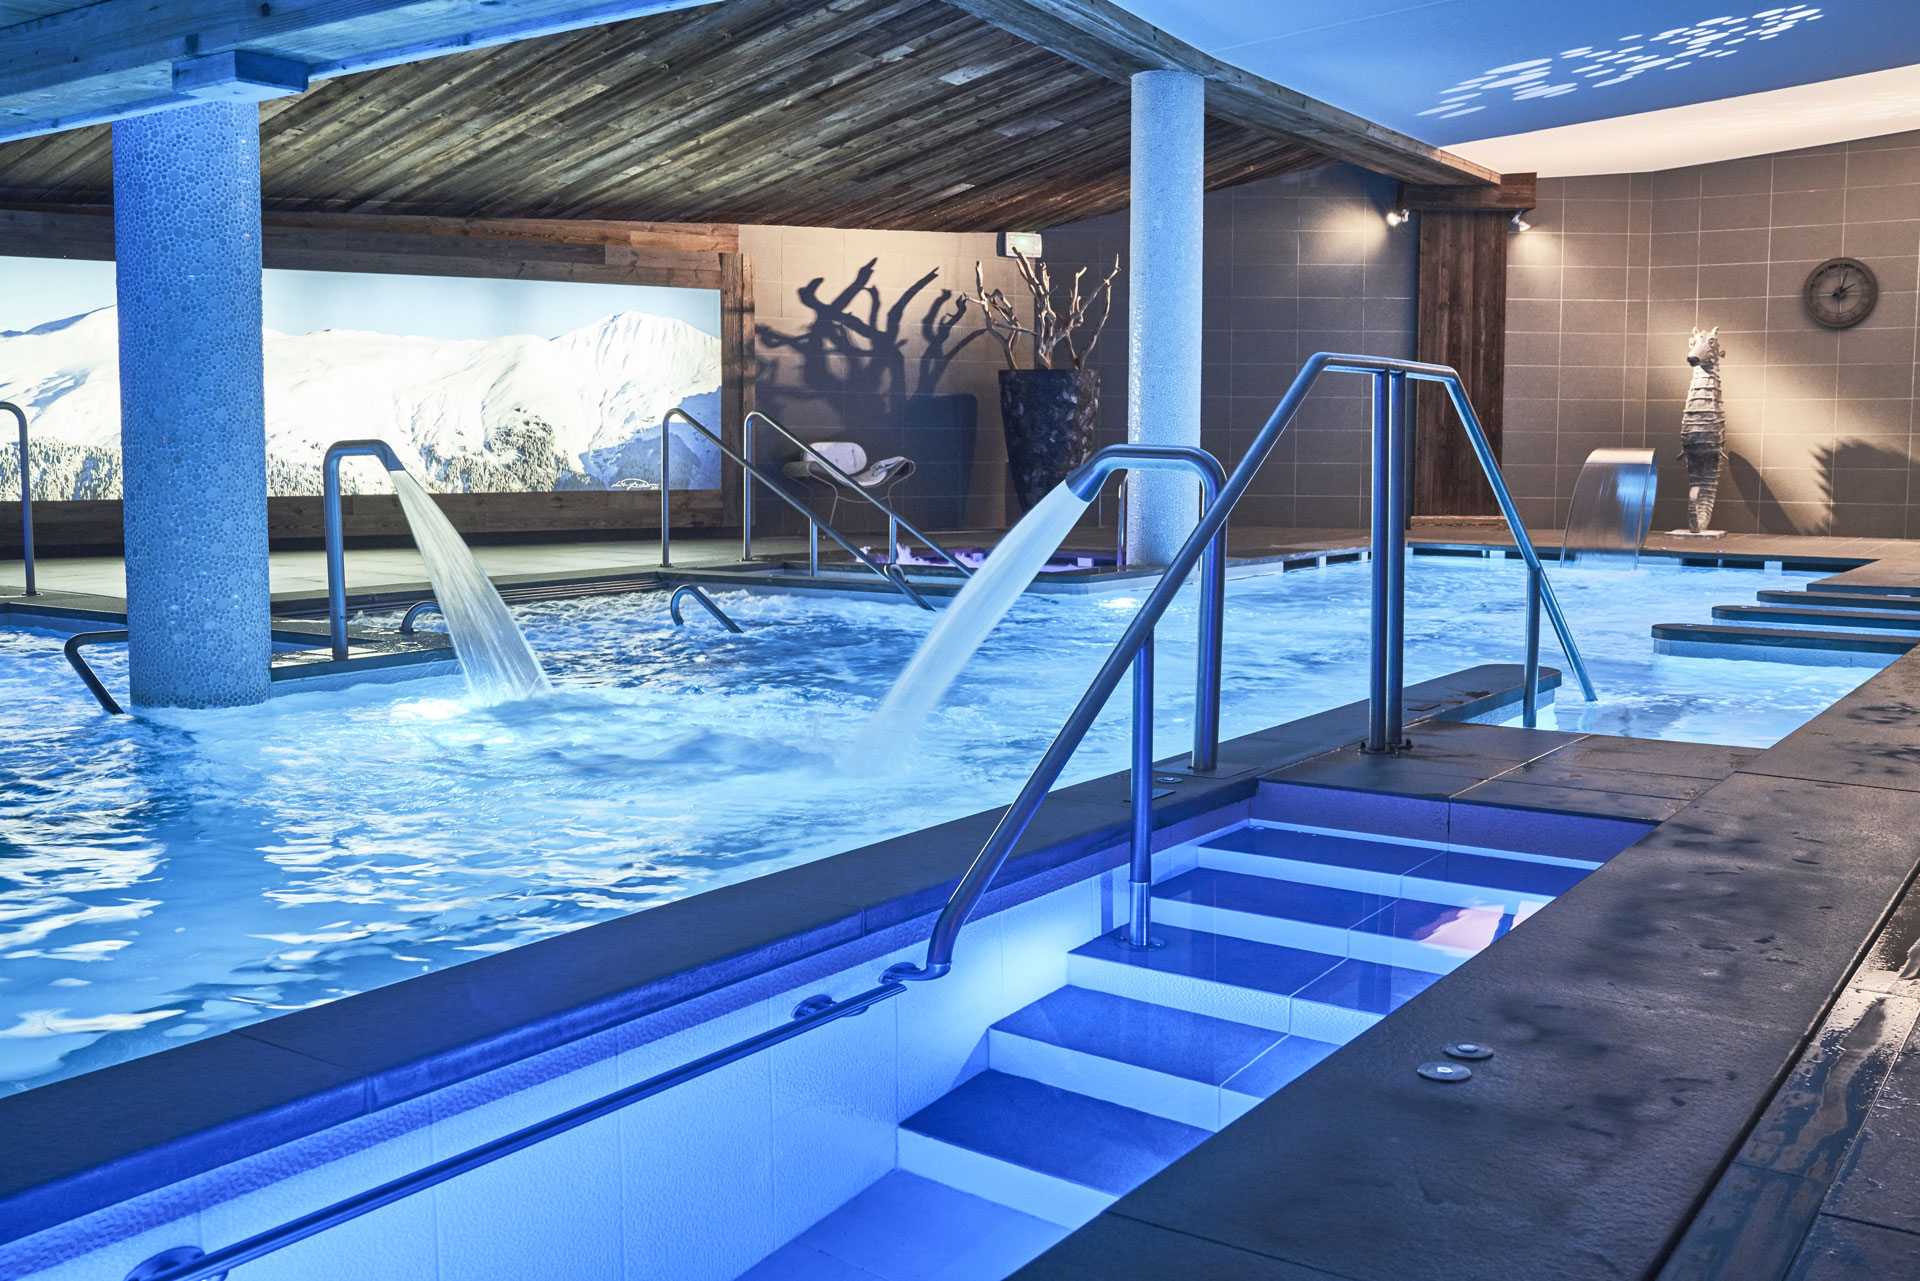 The Chabichou Hote Spa in Courchevel